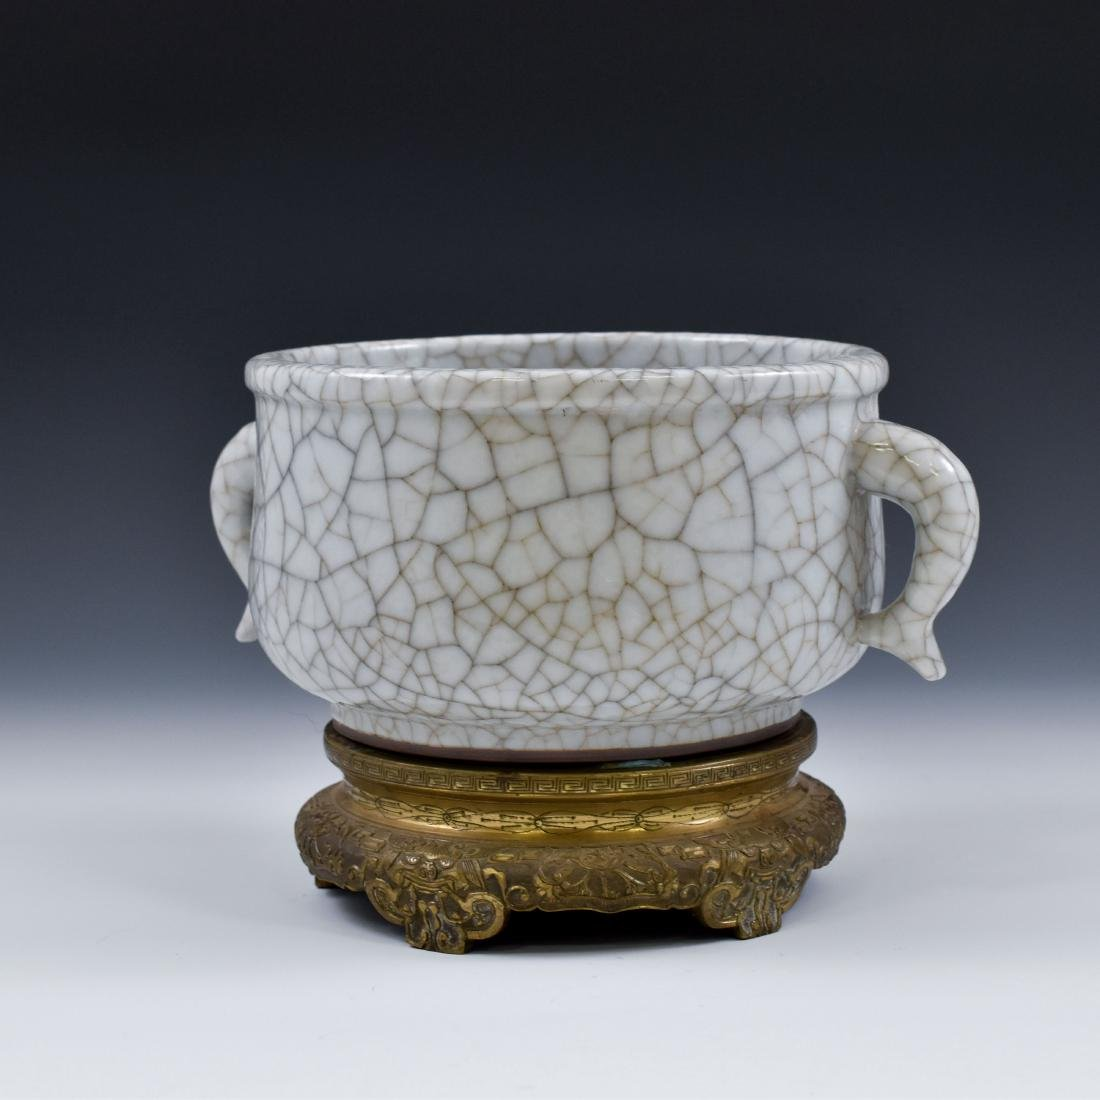 18TH C GE TYPE CENSER WITH FISH TAIL HANDLES ON STAND - 4